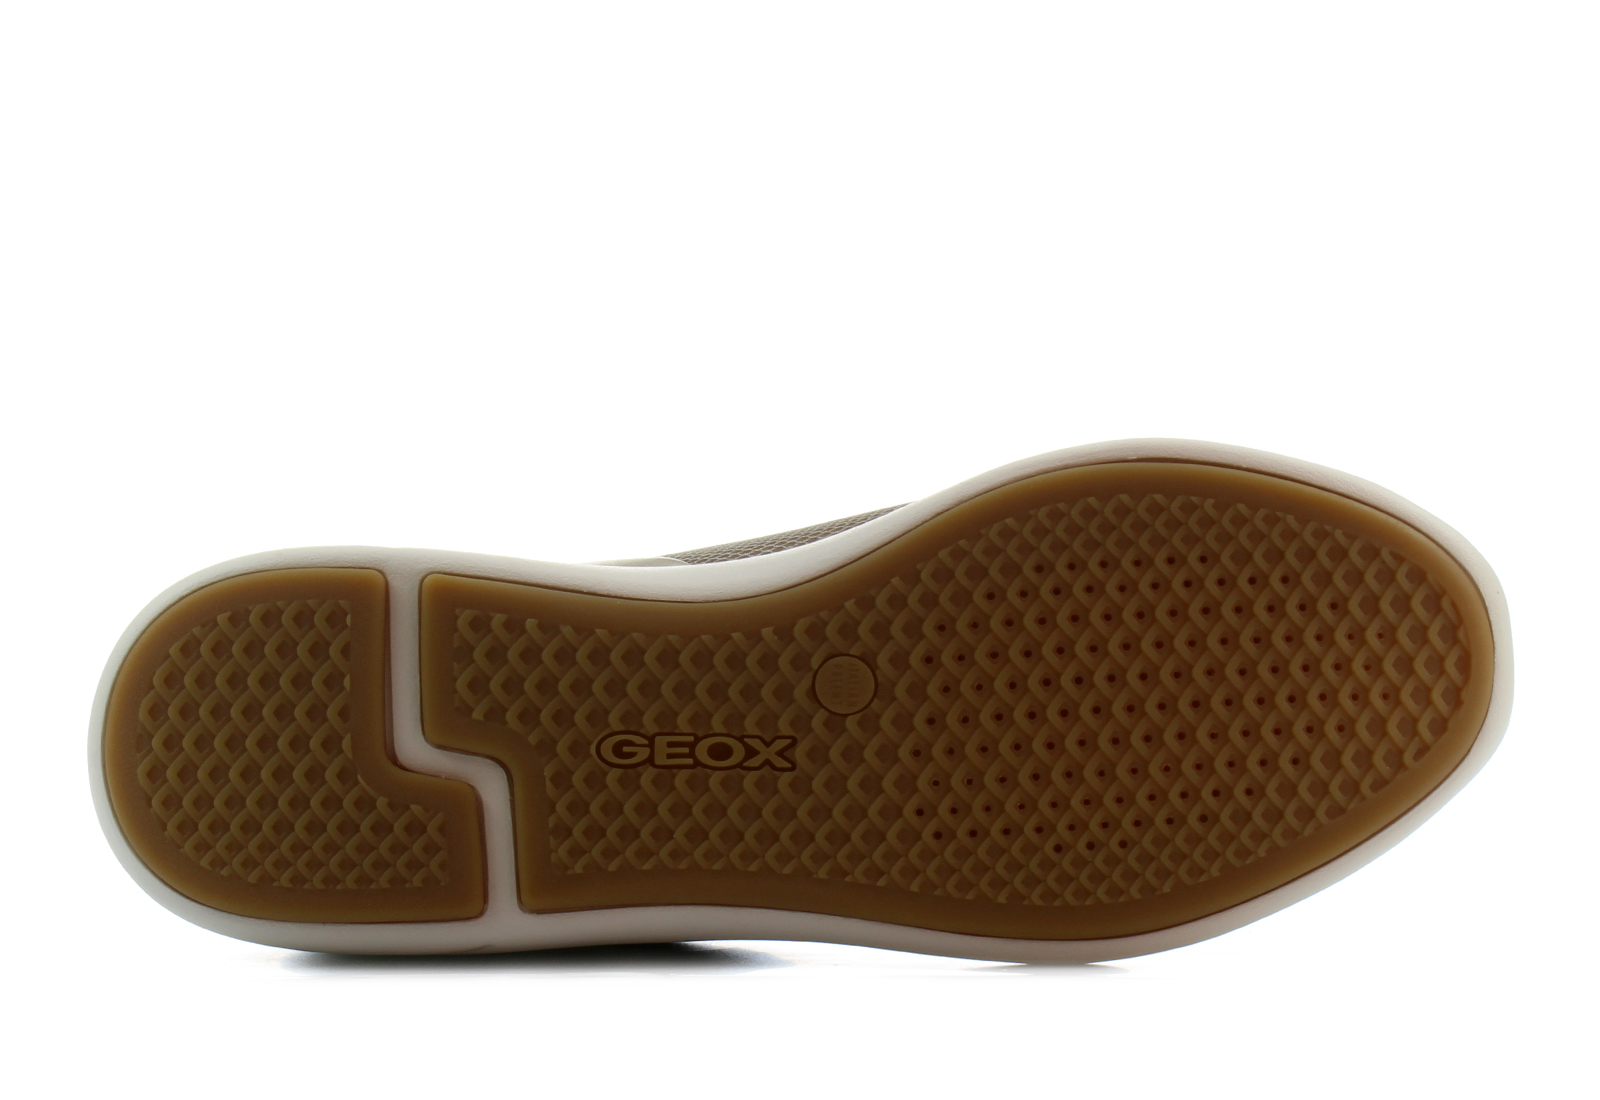 Geox Shoes Ophira 1ce Gnaj H62l Online Shop For Sneakers Shoes And Boots